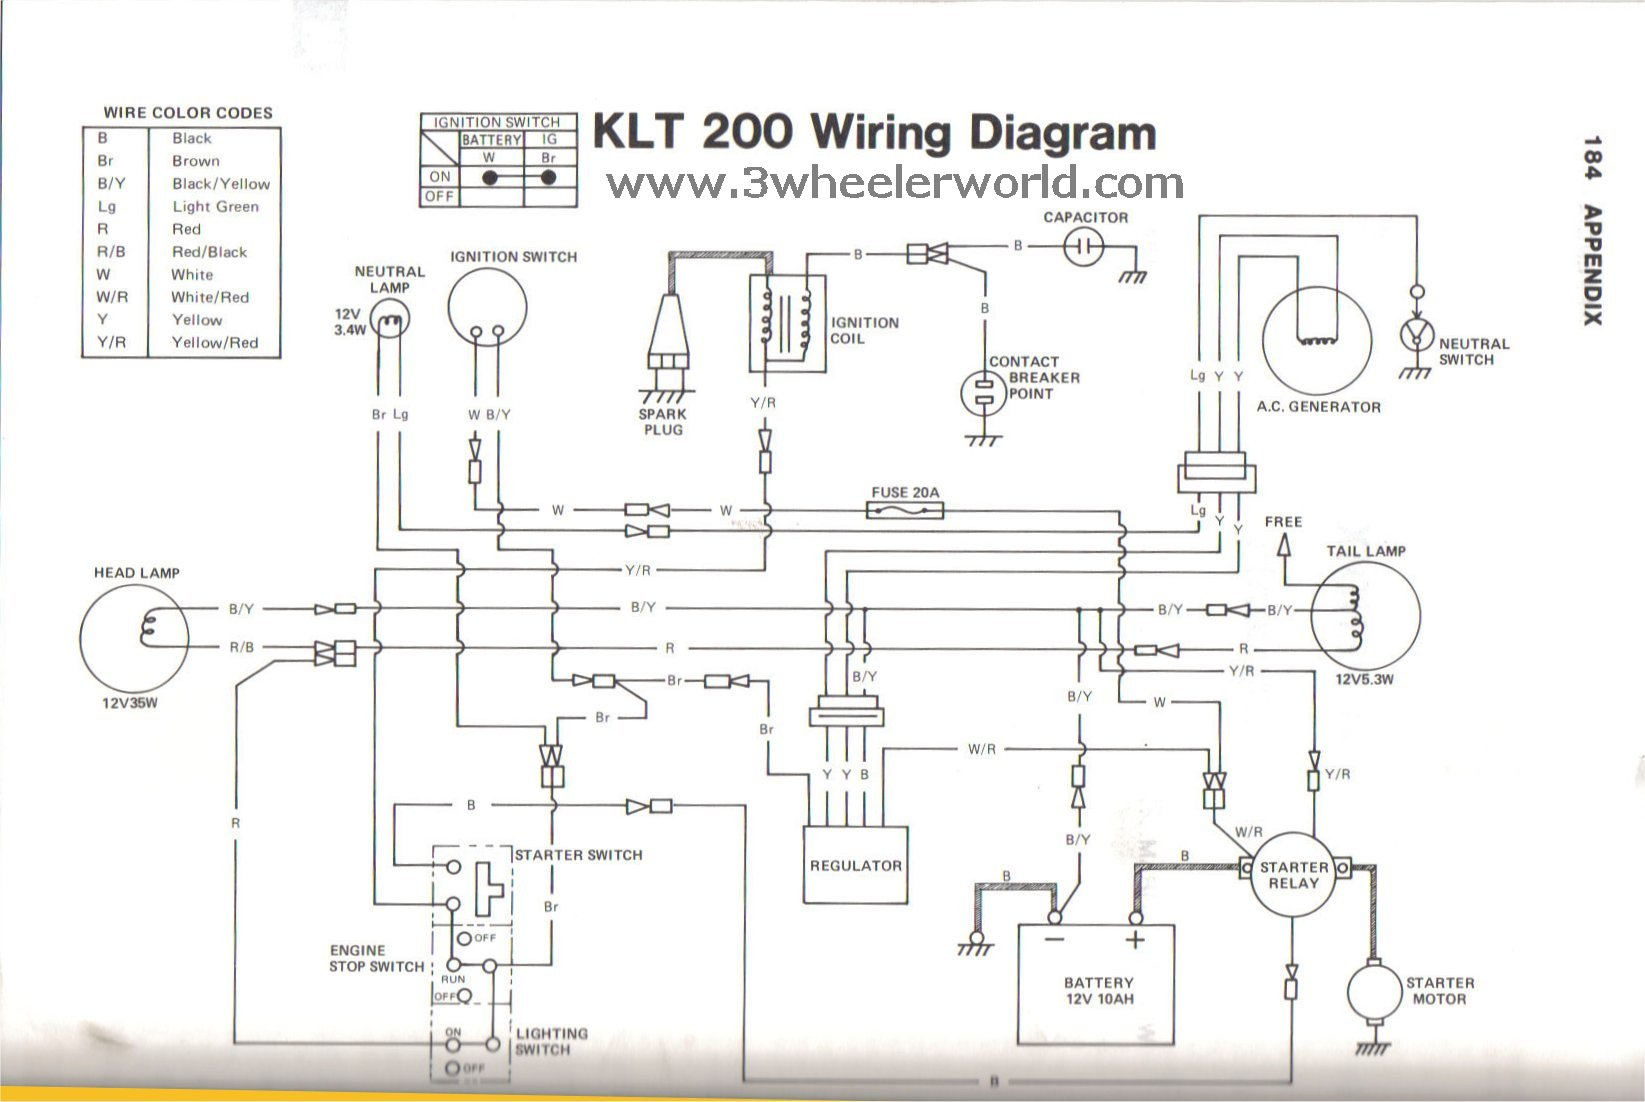 KLT200WiringDiagram1 3 wheeler world tech help kawasaki wiring diagrams  at crackthecode.co